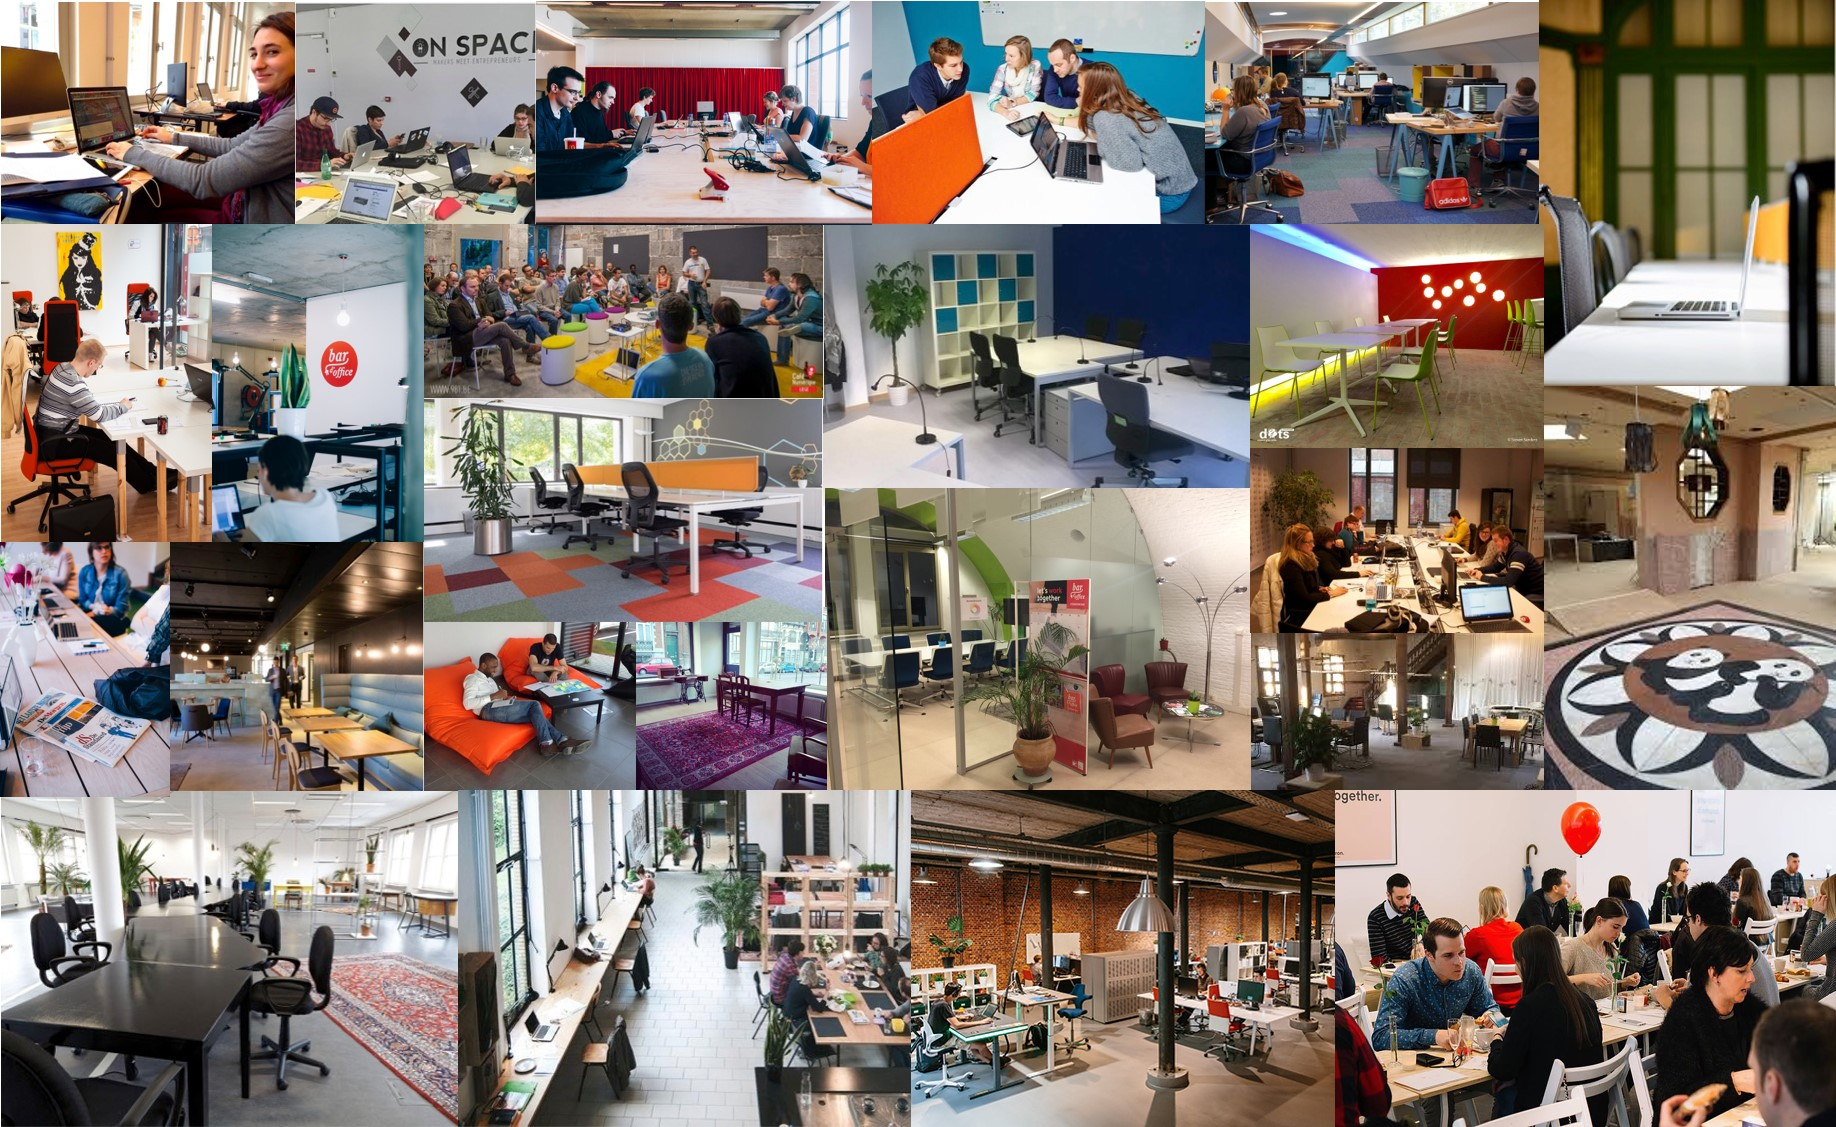 A view inside the coworking spaces throughout Belgium